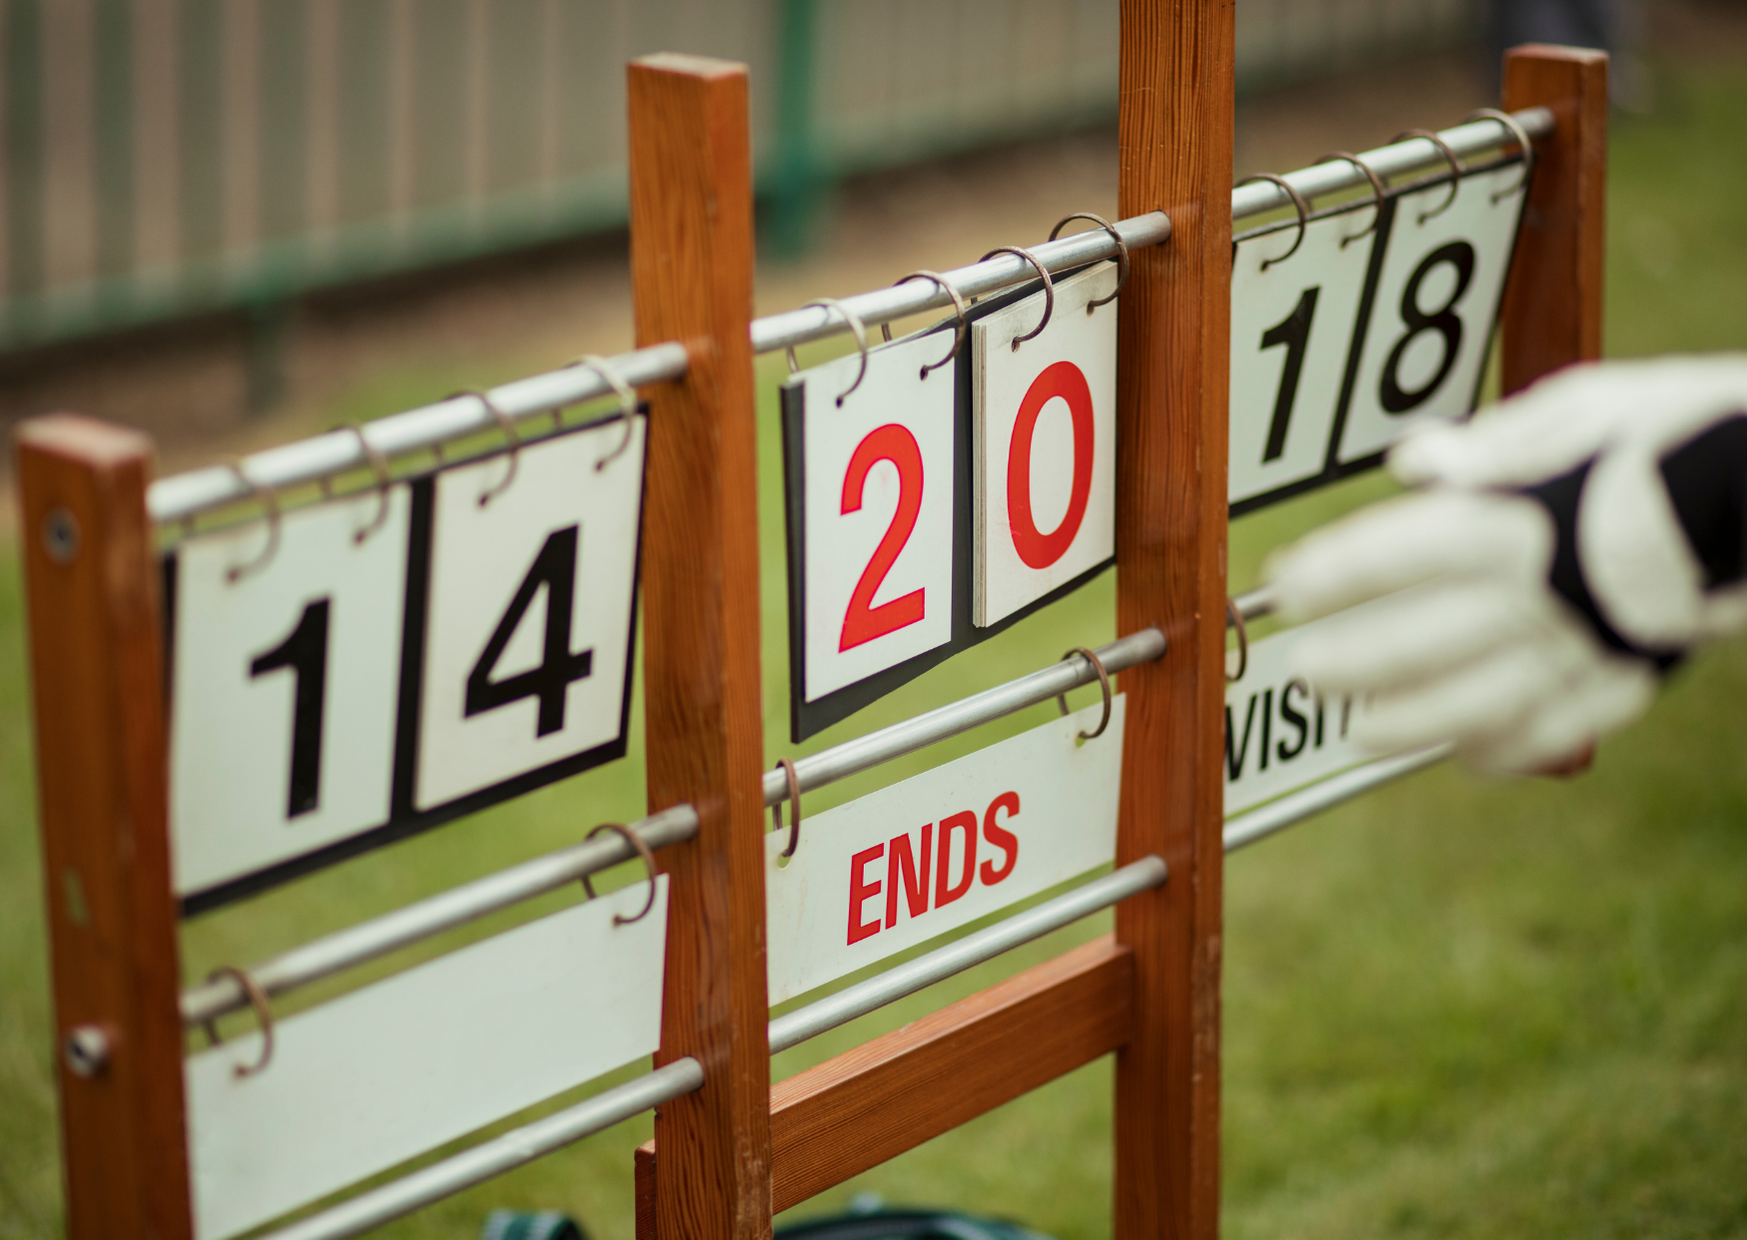 a lawn bowl score board in Types of Lawn Bowls Games